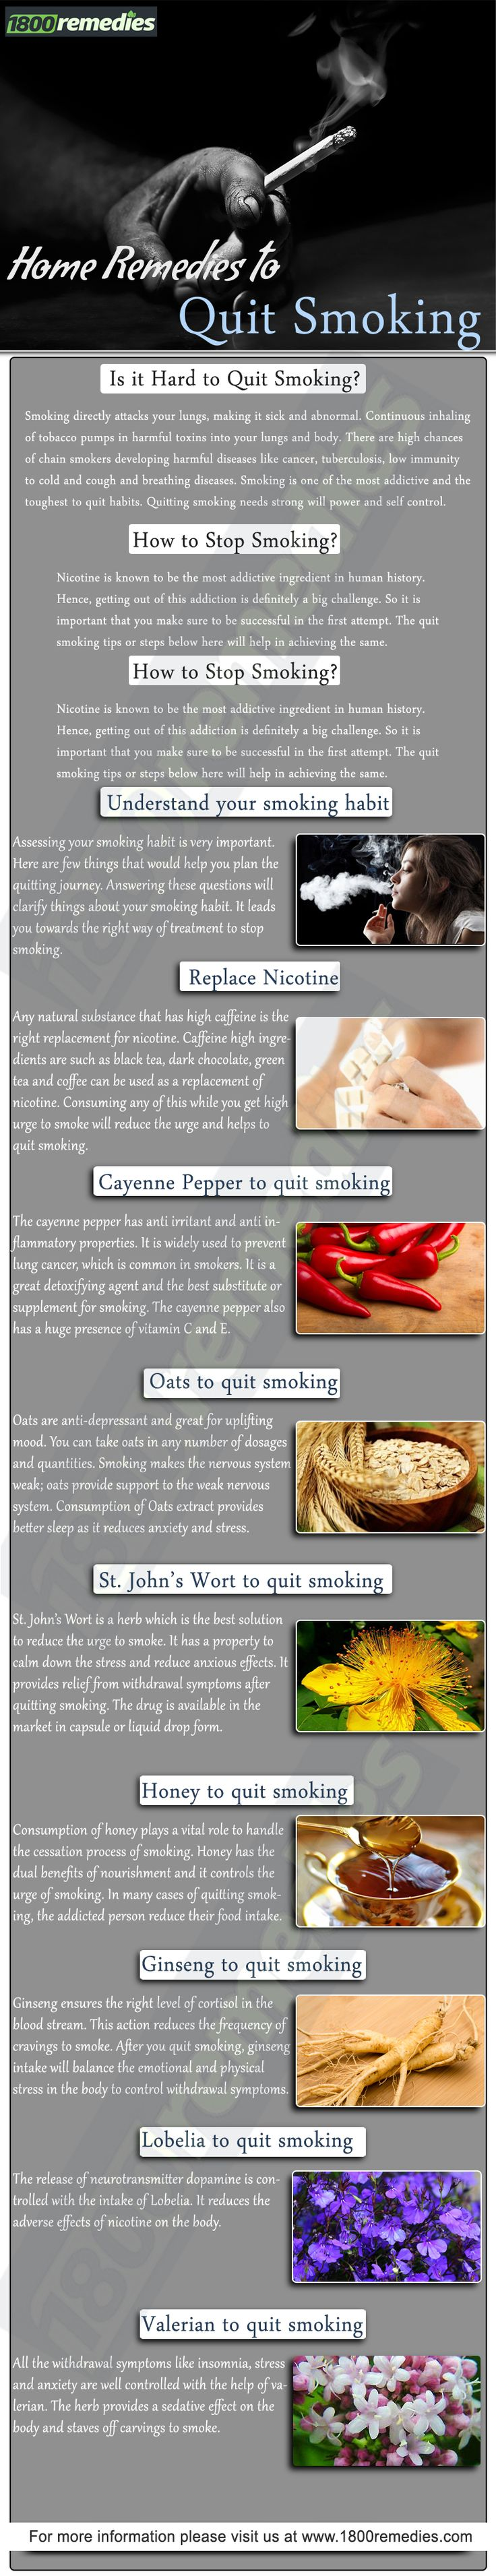 best ideas about help to quit smoking smoking the following are the effective home remedies to quit smoking naturally